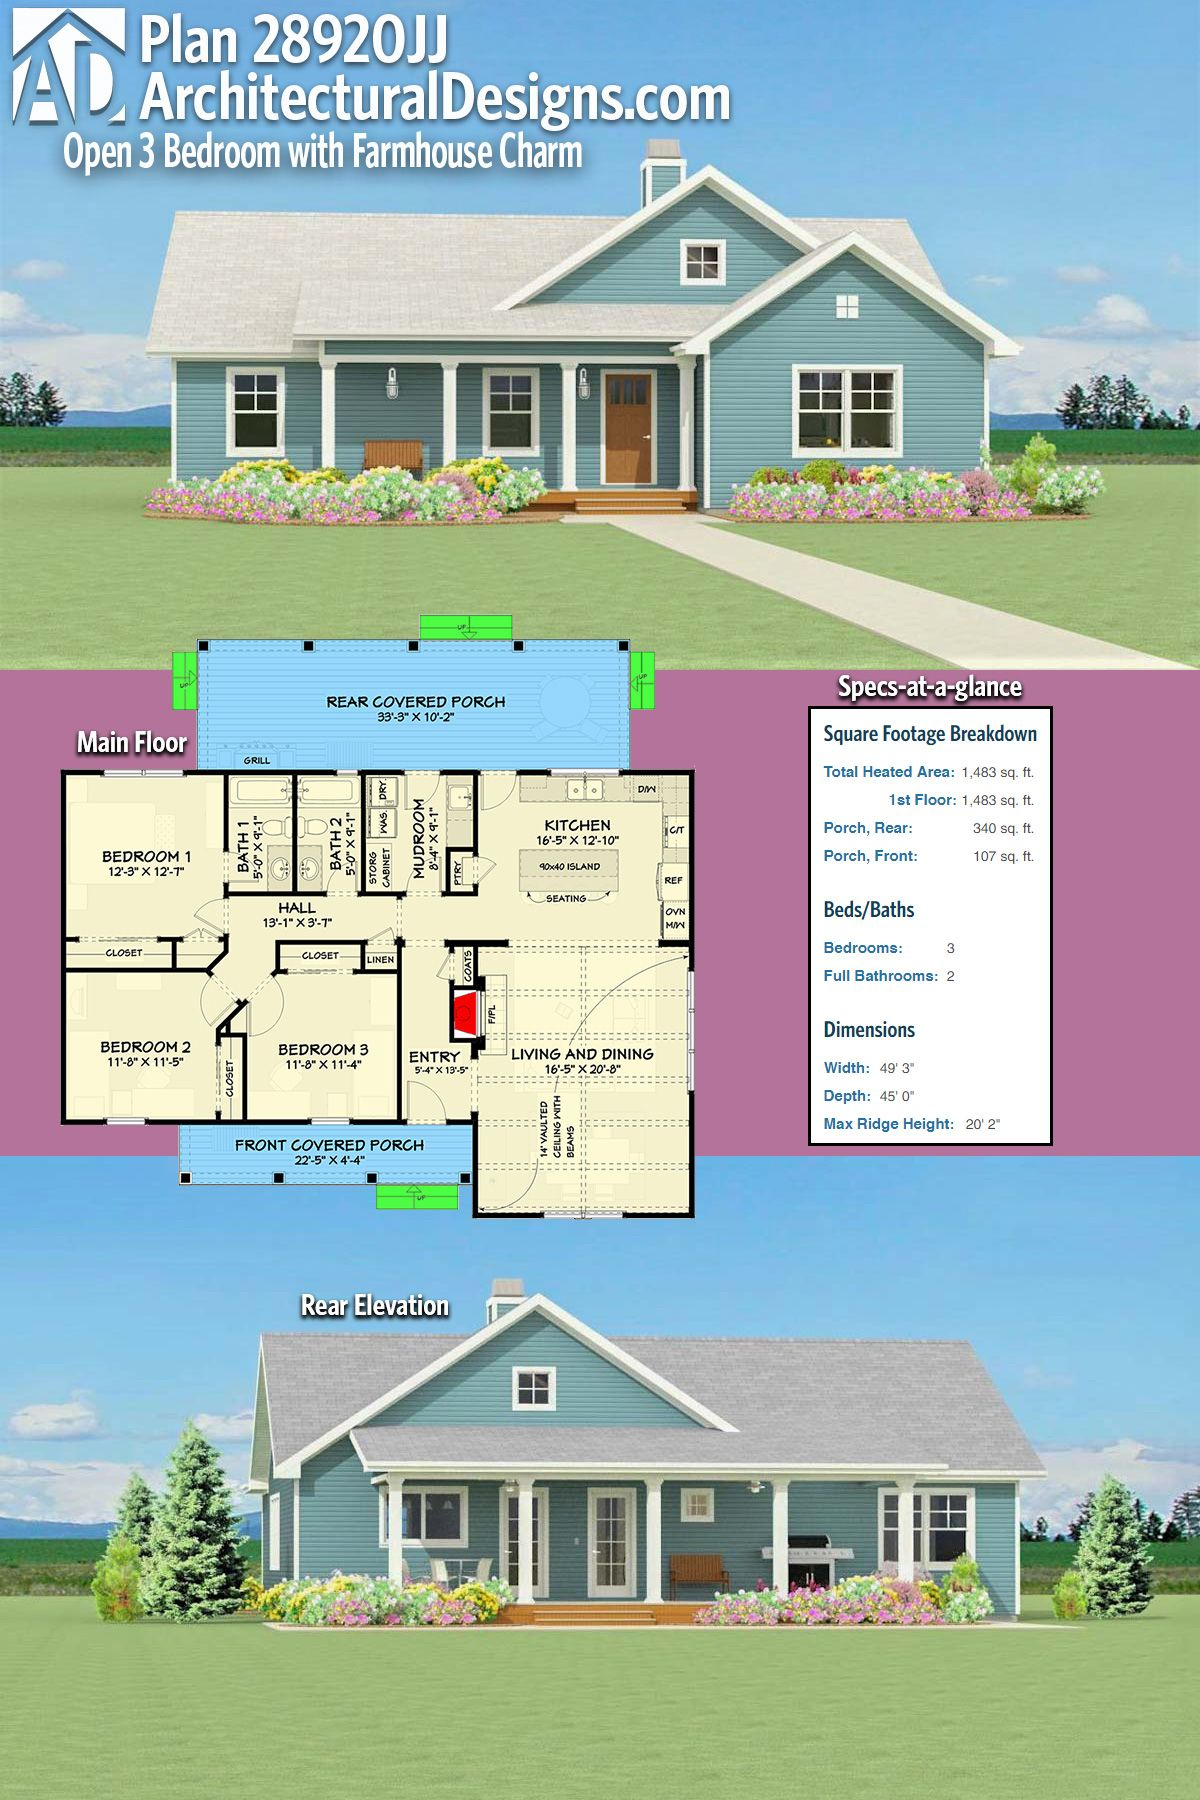 Introducing Architectural Designs Farmhouse House Plan 28920jj Gives You Over 1 400 Square Feet Of Hea Modern House Plans House Plans Farmhouse Farmhouse House